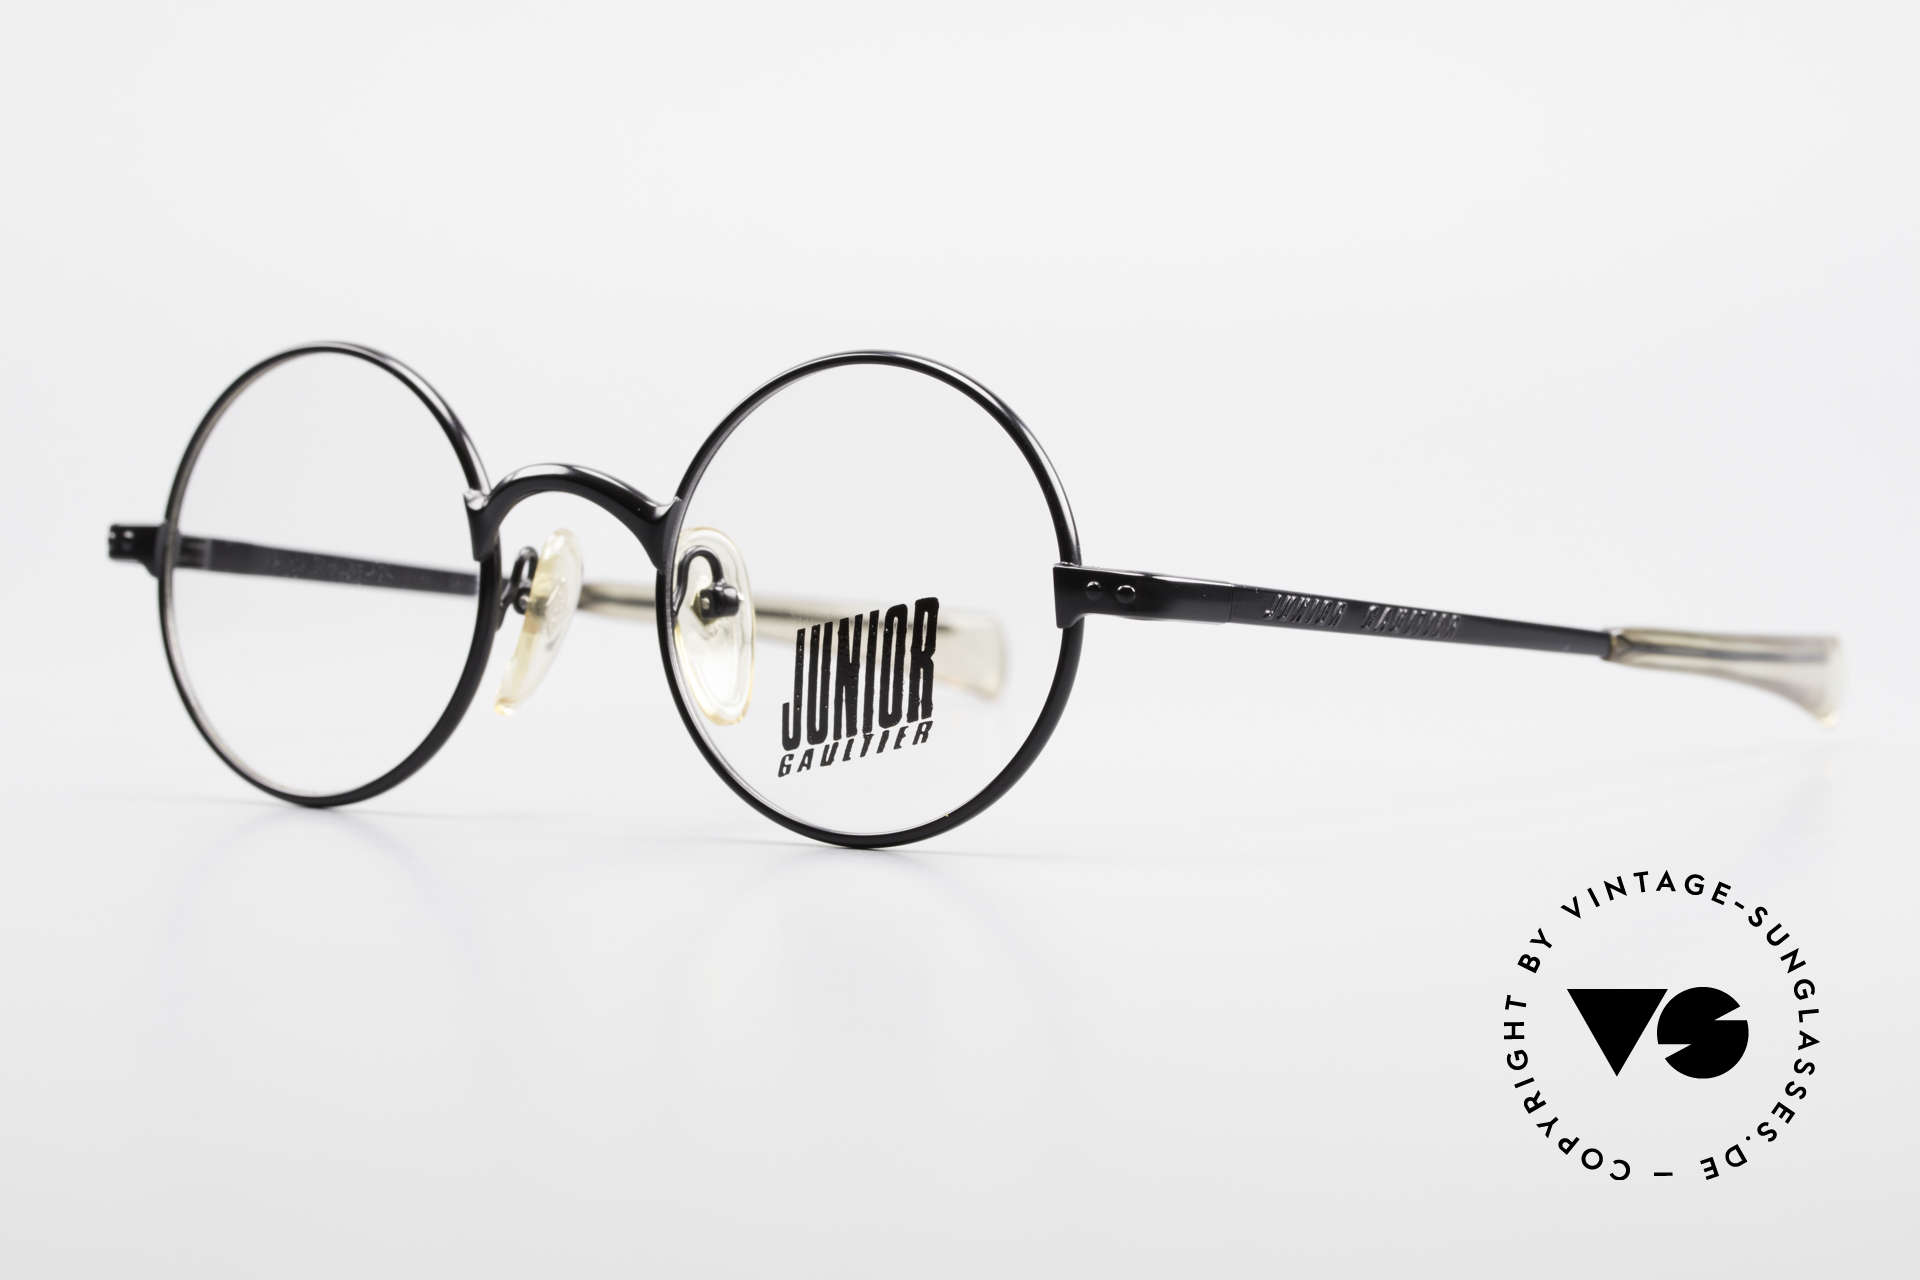 """Jean Paul Gaultier 57-0173 Round Glasses Junior Gaultier, round frame with """"Junior Gaultier"""" on the temples, Made for Men and Women"""